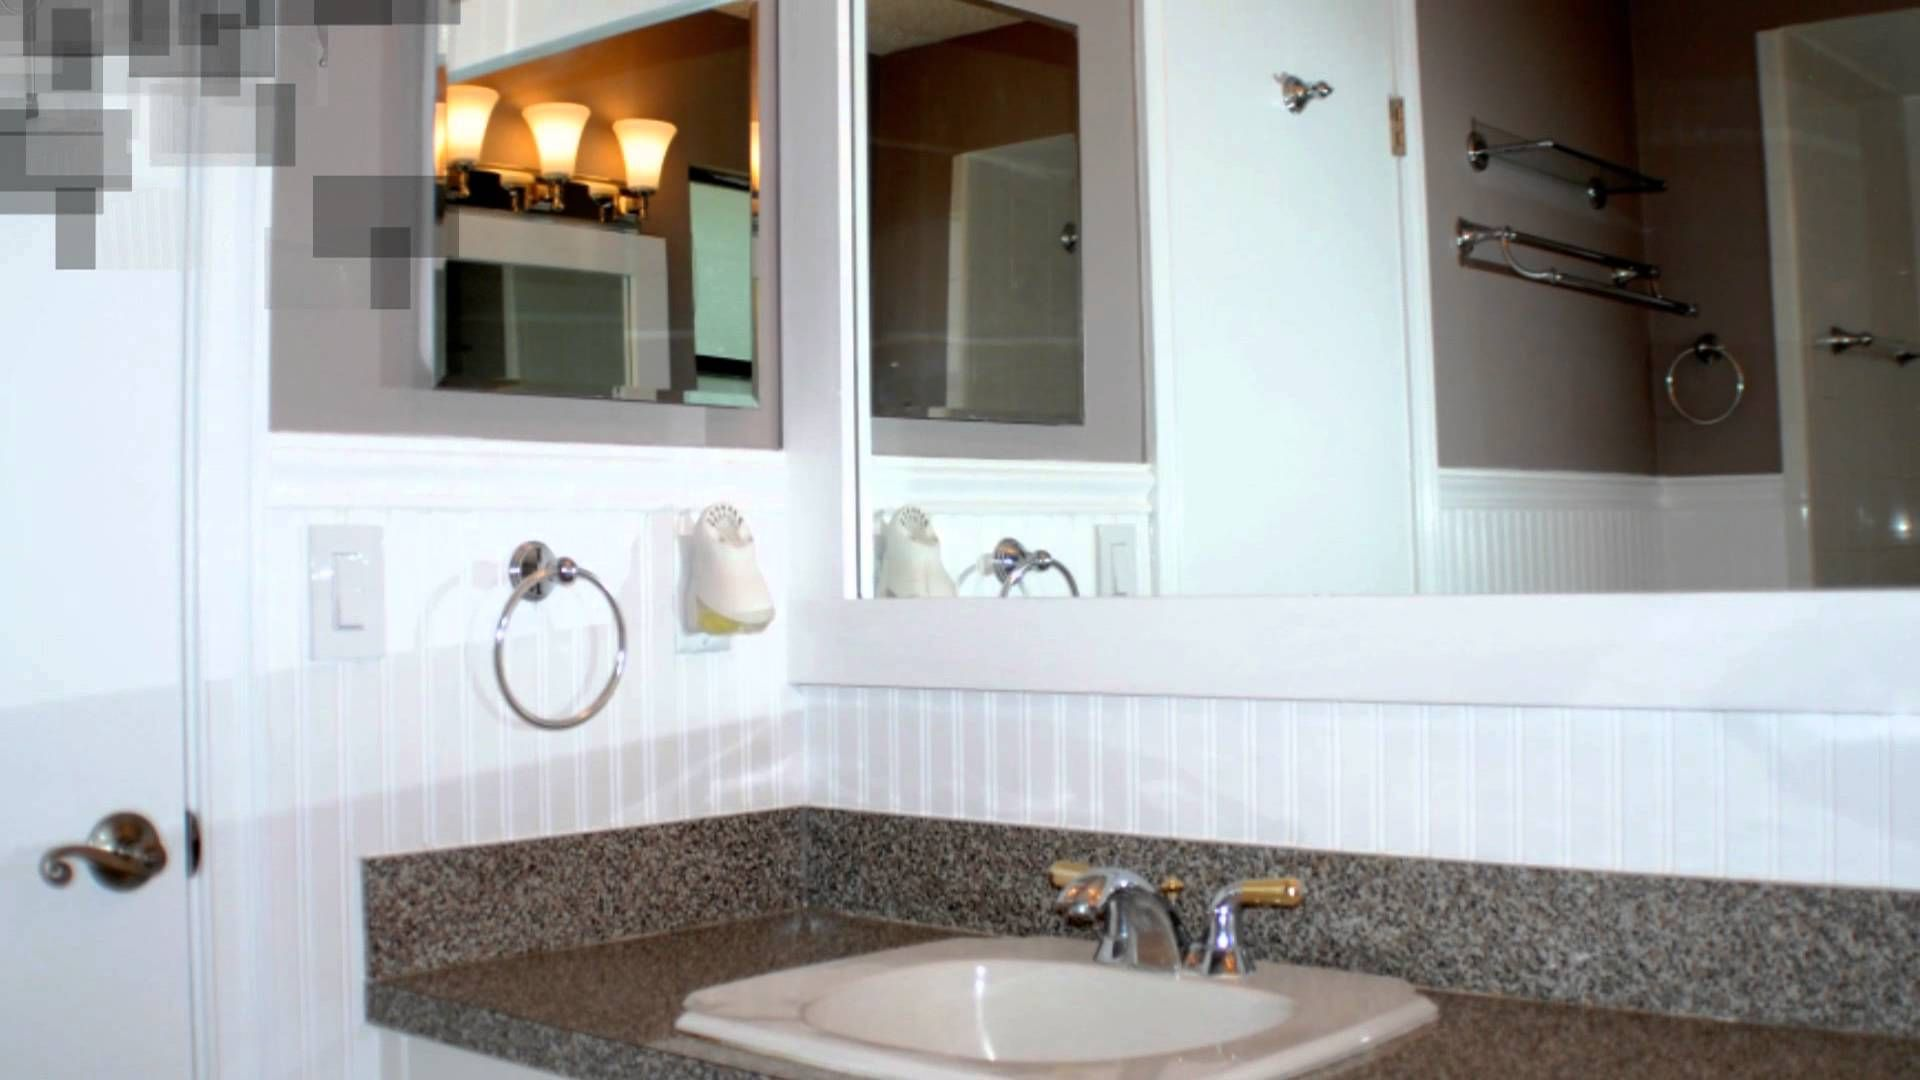 Mdf Beadboard For Bathroom Suitable With Plastic Beadboard For Bathroom Walls Suitable With Beadboard Wainscoting For Bathroom Suitable Wit Beadboard Wainscoting How To Install Beadboard House Home Magazine